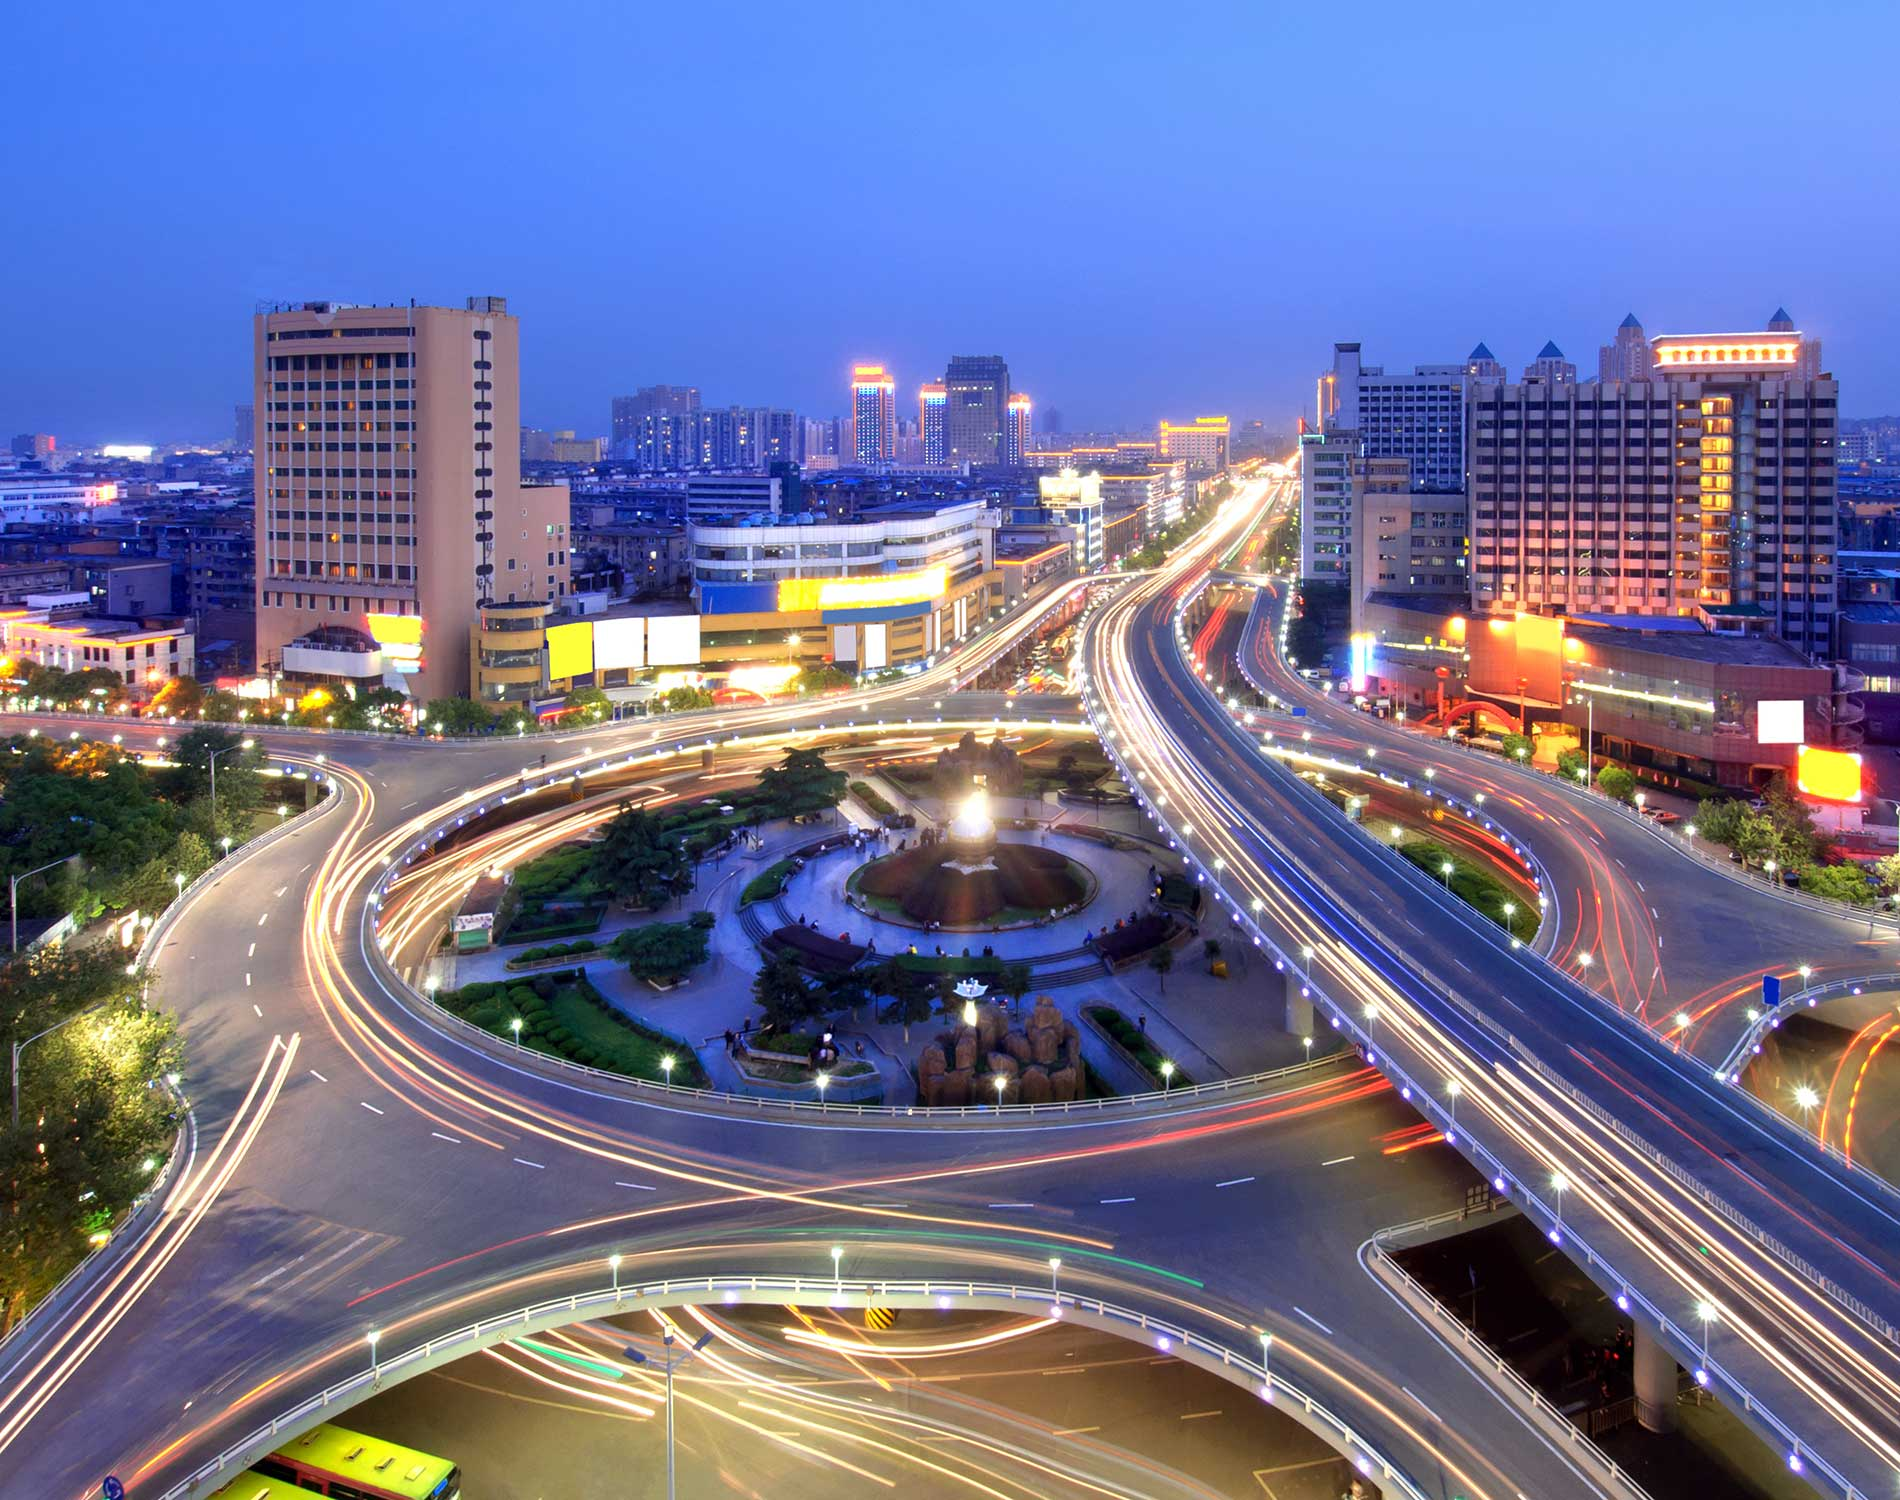 /~/media/Images/Website/Background%20Images/Offices/Nanchang/Nanchang_City_1900x1500px.ashx